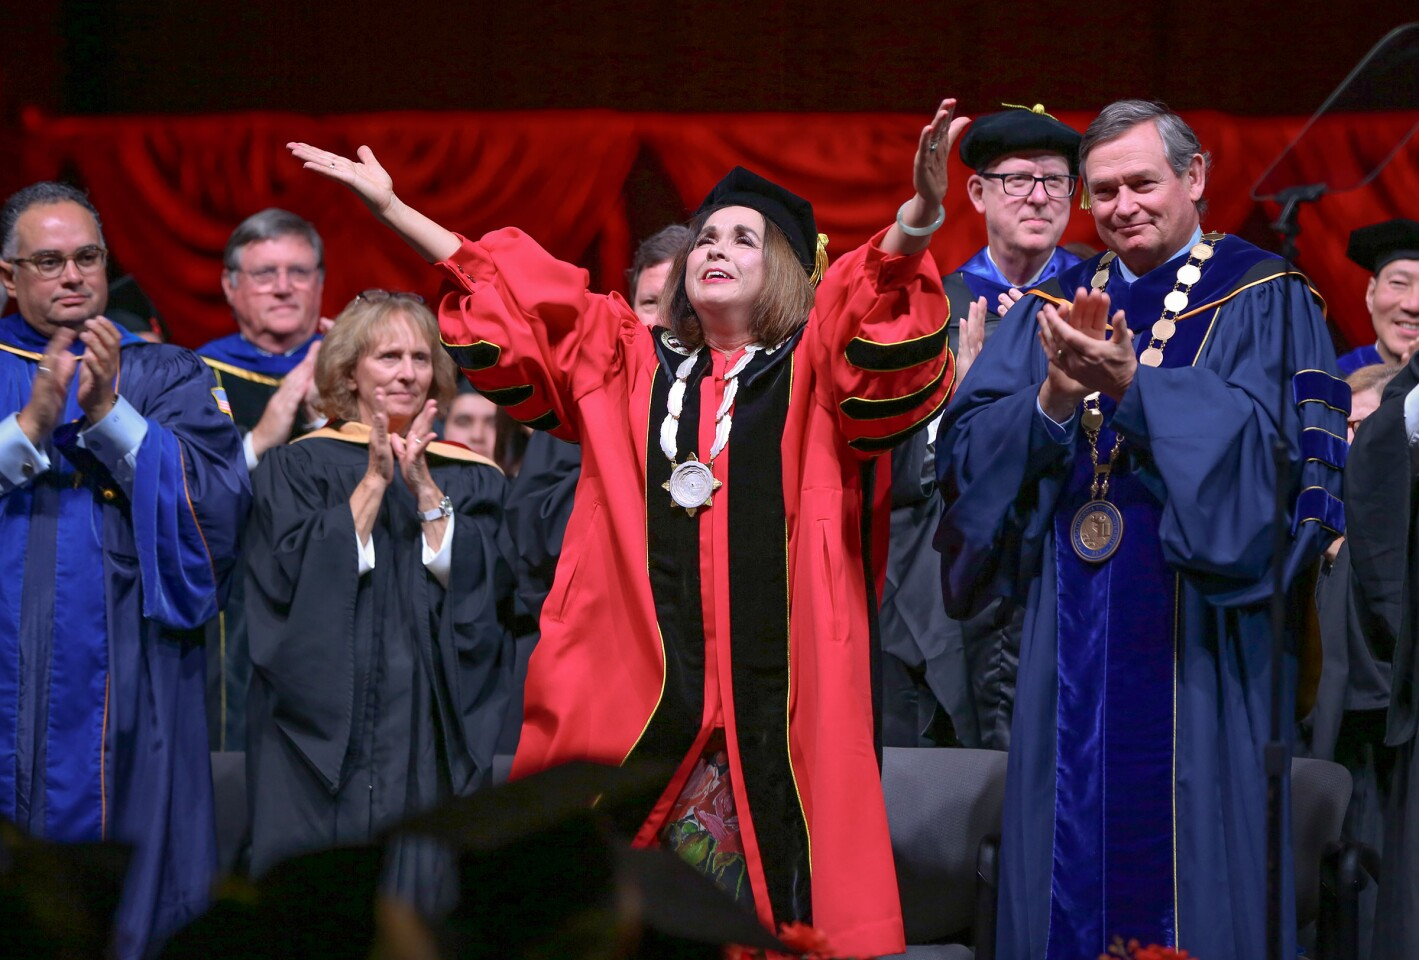 Adela de la Torre, the new president of San Diego State University concludes her presidential address with outstretched arms and by blowing kisses to those in attendance to watch her be inaugurated, April 11, 2019, as the ninth permanent president of the university and the first woman to serve in that position.